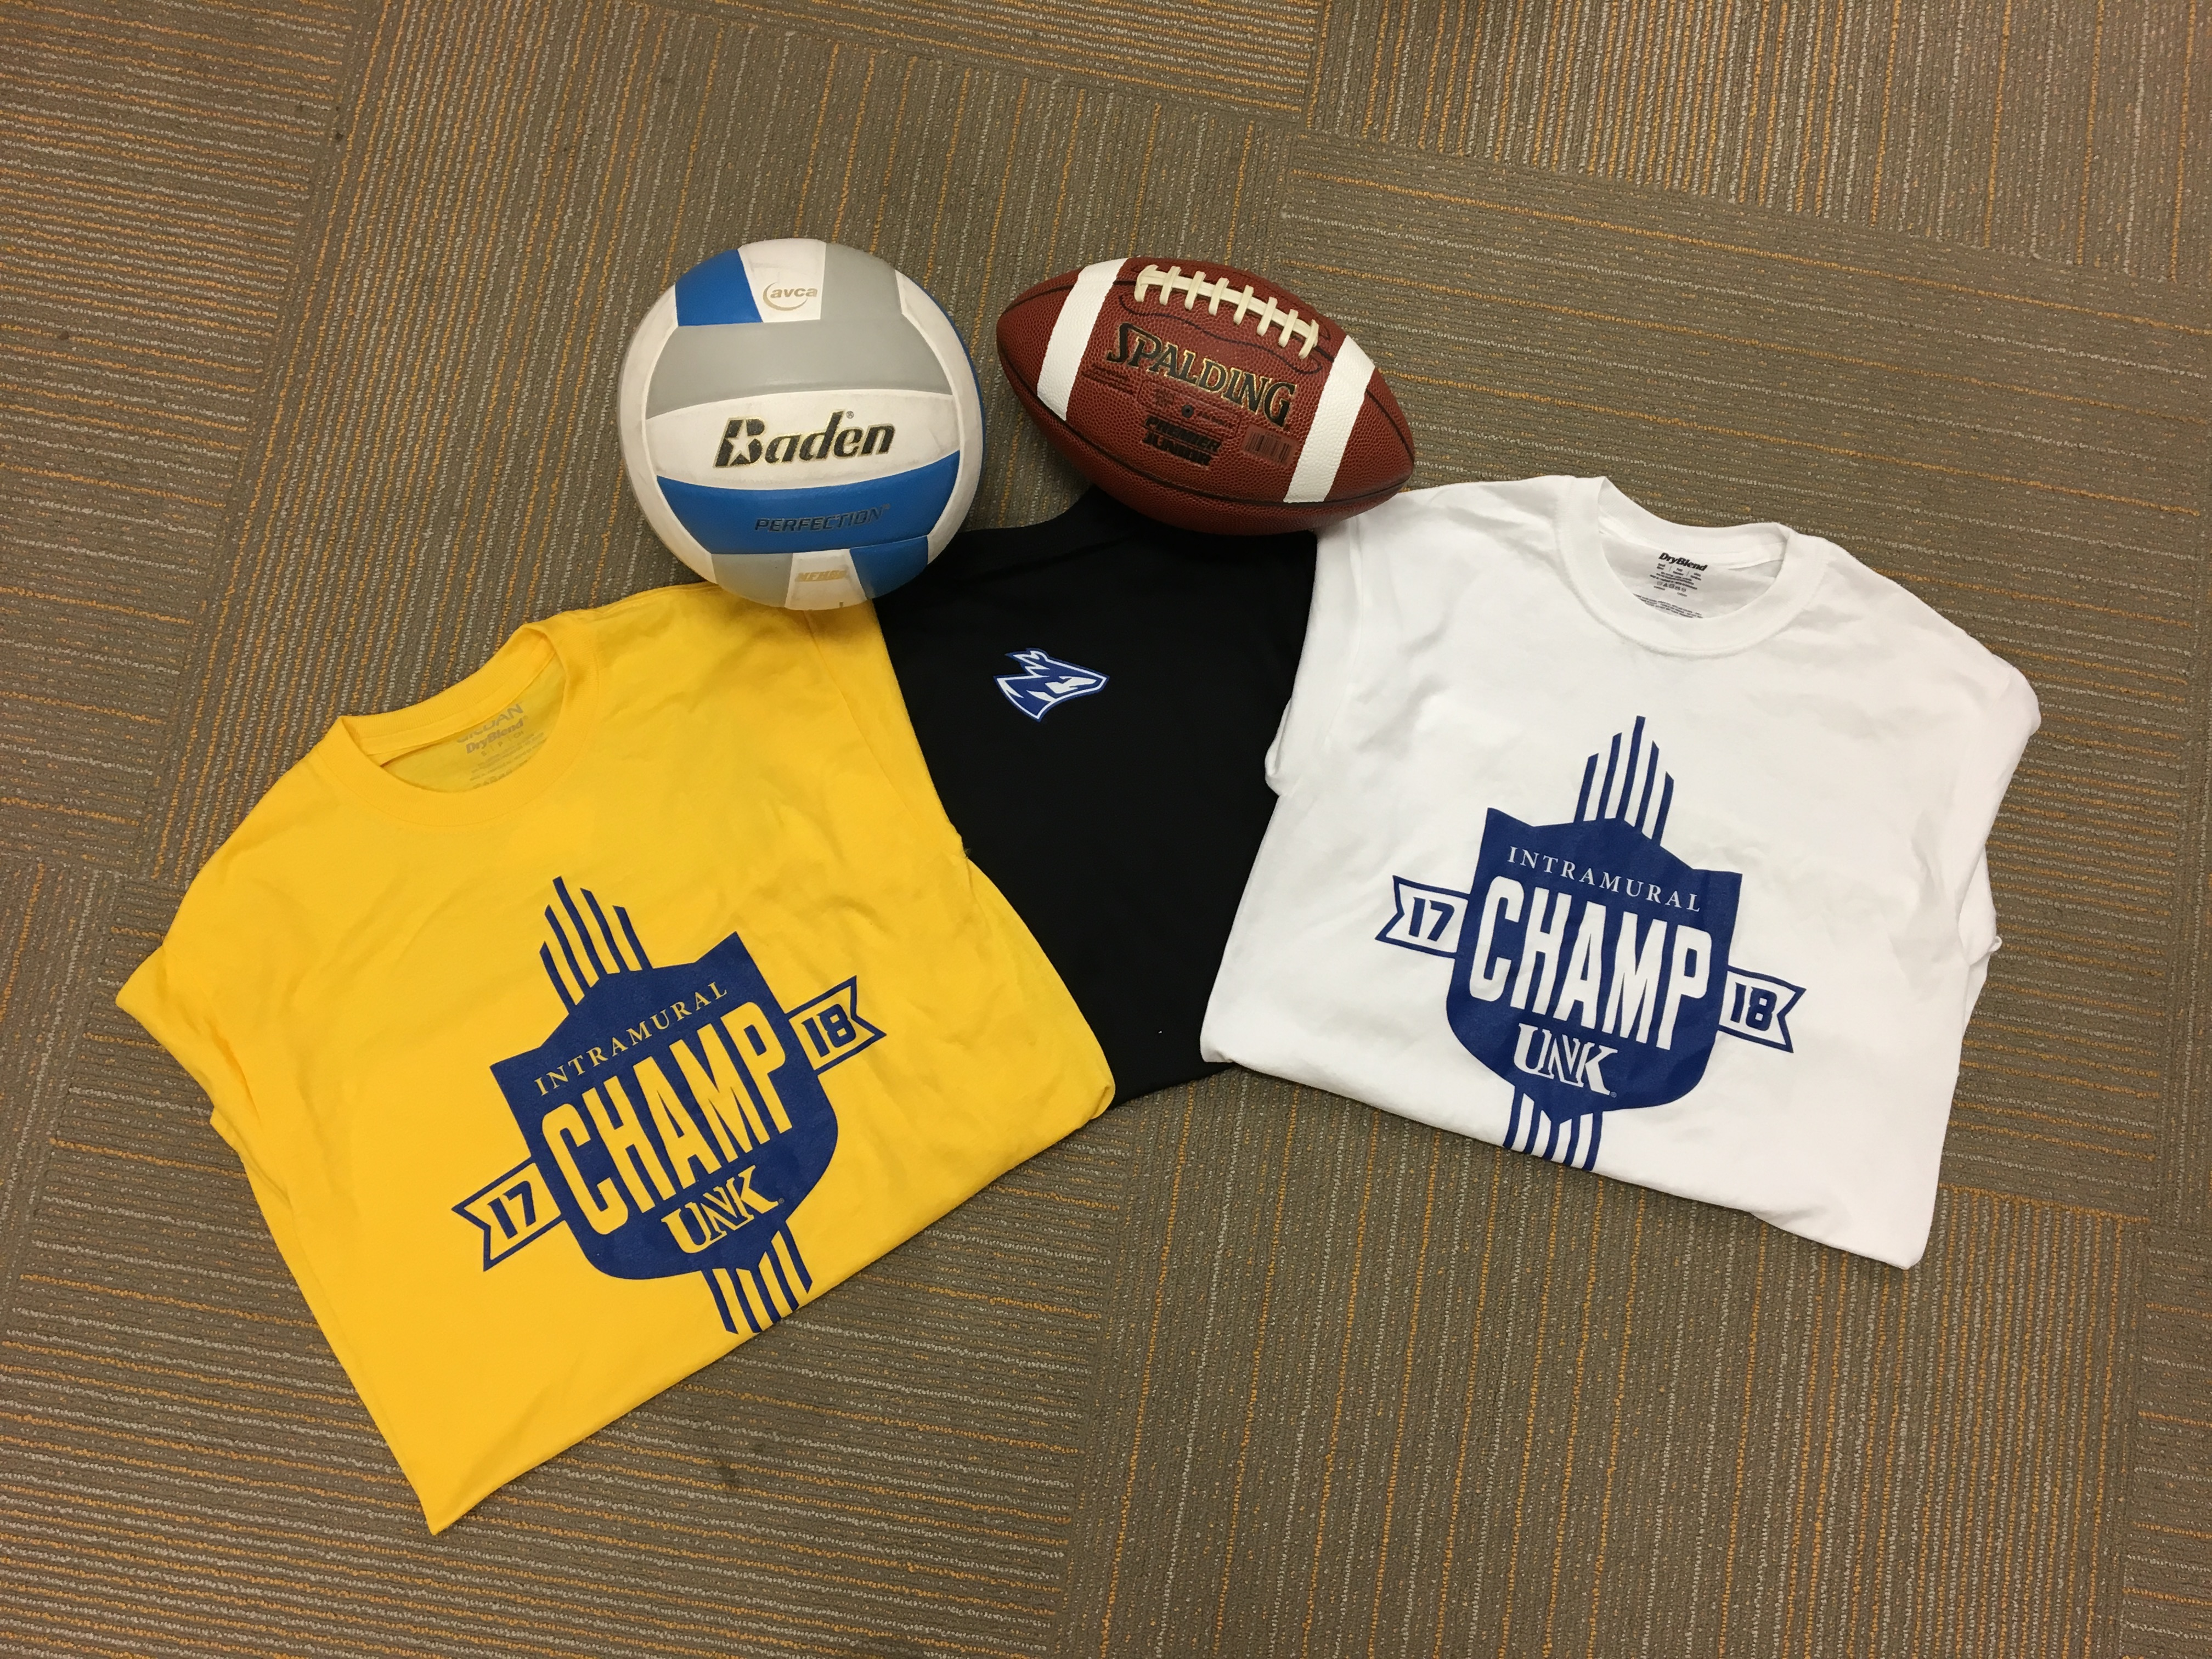 5f485ed97 Andrew Winscot, the new Campus Rec director, is excited to see students  sporting intramural champion T-shirts